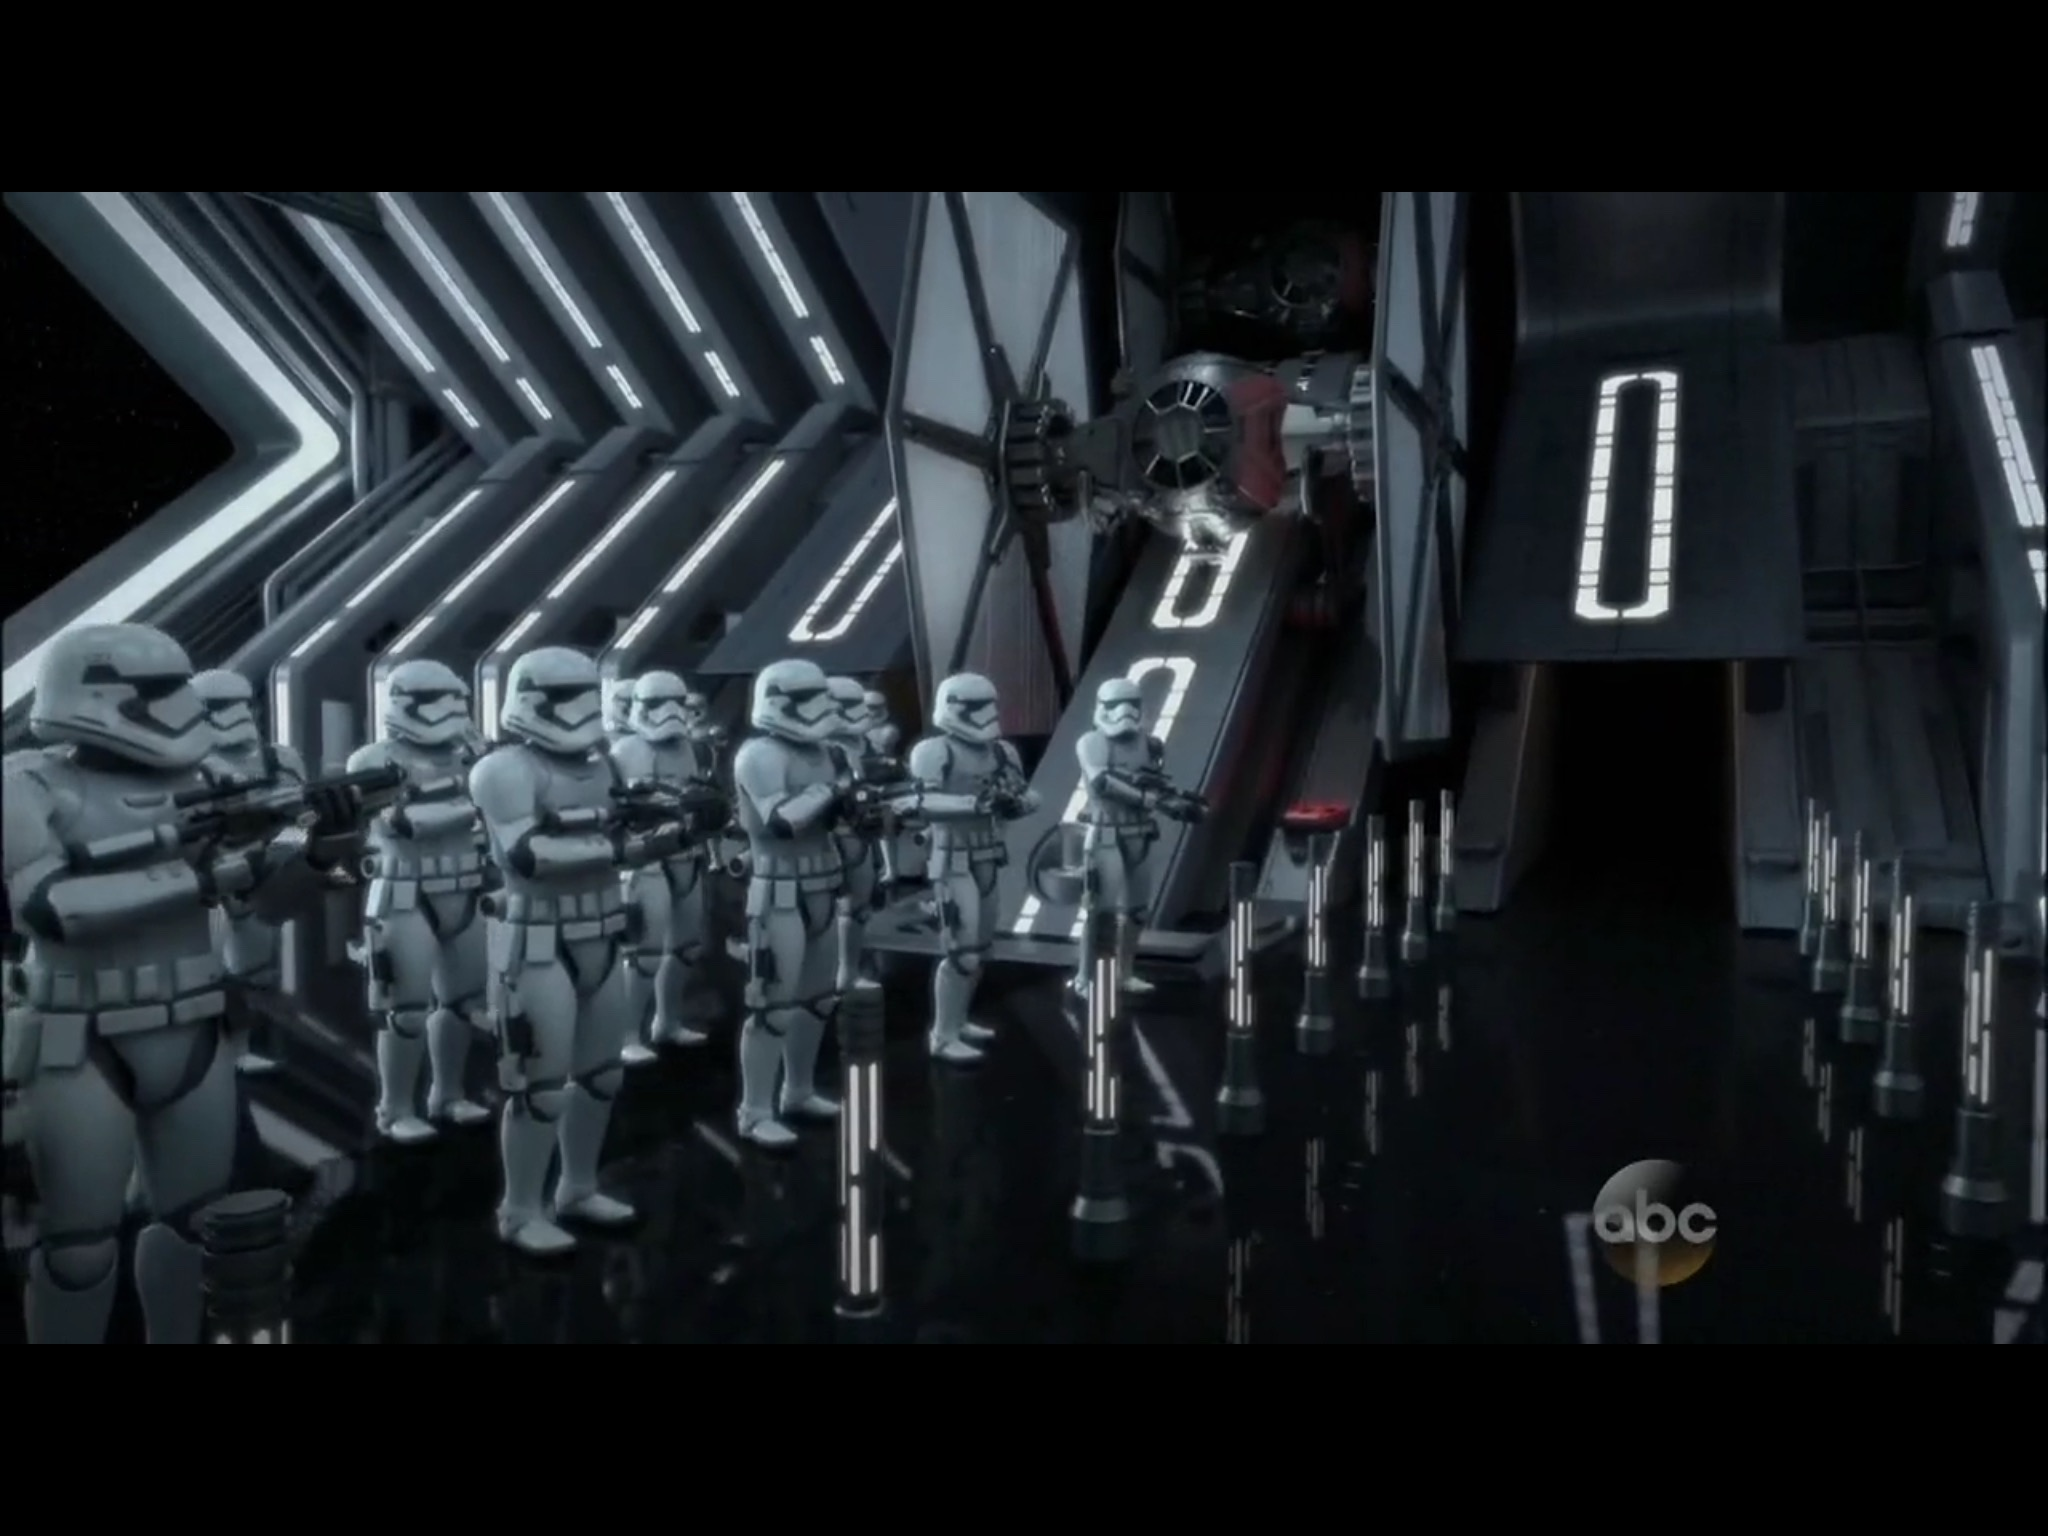 Star Wars Land First Order Stormtrooper Battle attraction